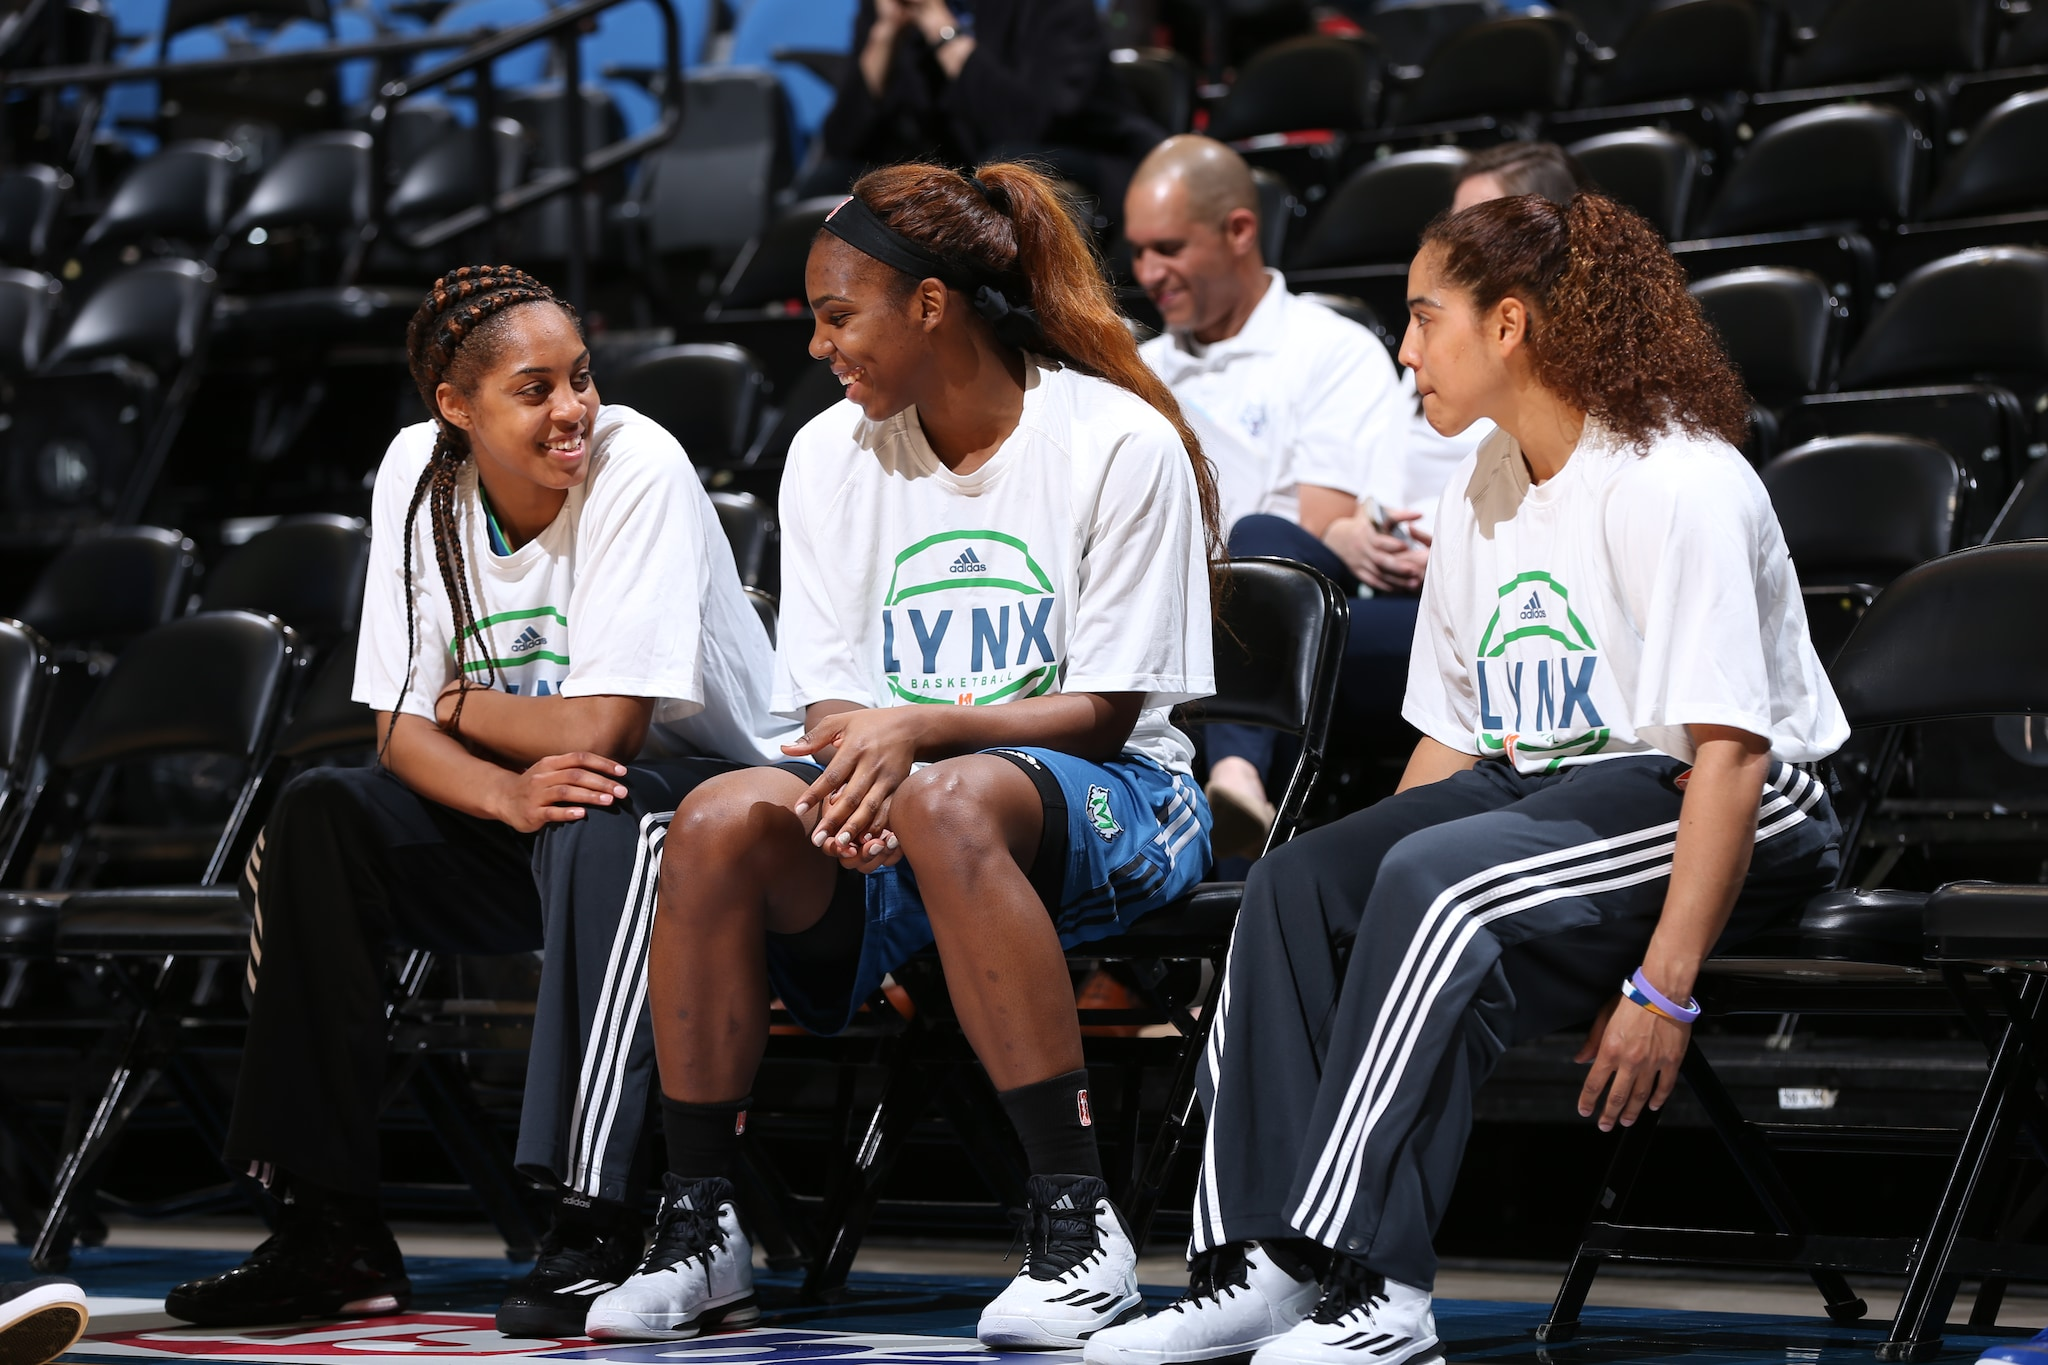 MINNEAPOLIS, MN - JUNE 1:  Members of the Minnesota Lynx prepare to play against the New York Liberty on June 1, 2015 at Target Center in Minneapolis, Minnesota. NOTE TO USER: User expressly acknowledges and agrees that, by downloading and or using this Photograph, user is consenting to the terms and conditions of the Getty Images License Agreement. Mandatory Copyright Notice: Copyright 2015 NBAE (Photo by David Sherman/NBAE via Getty Images)